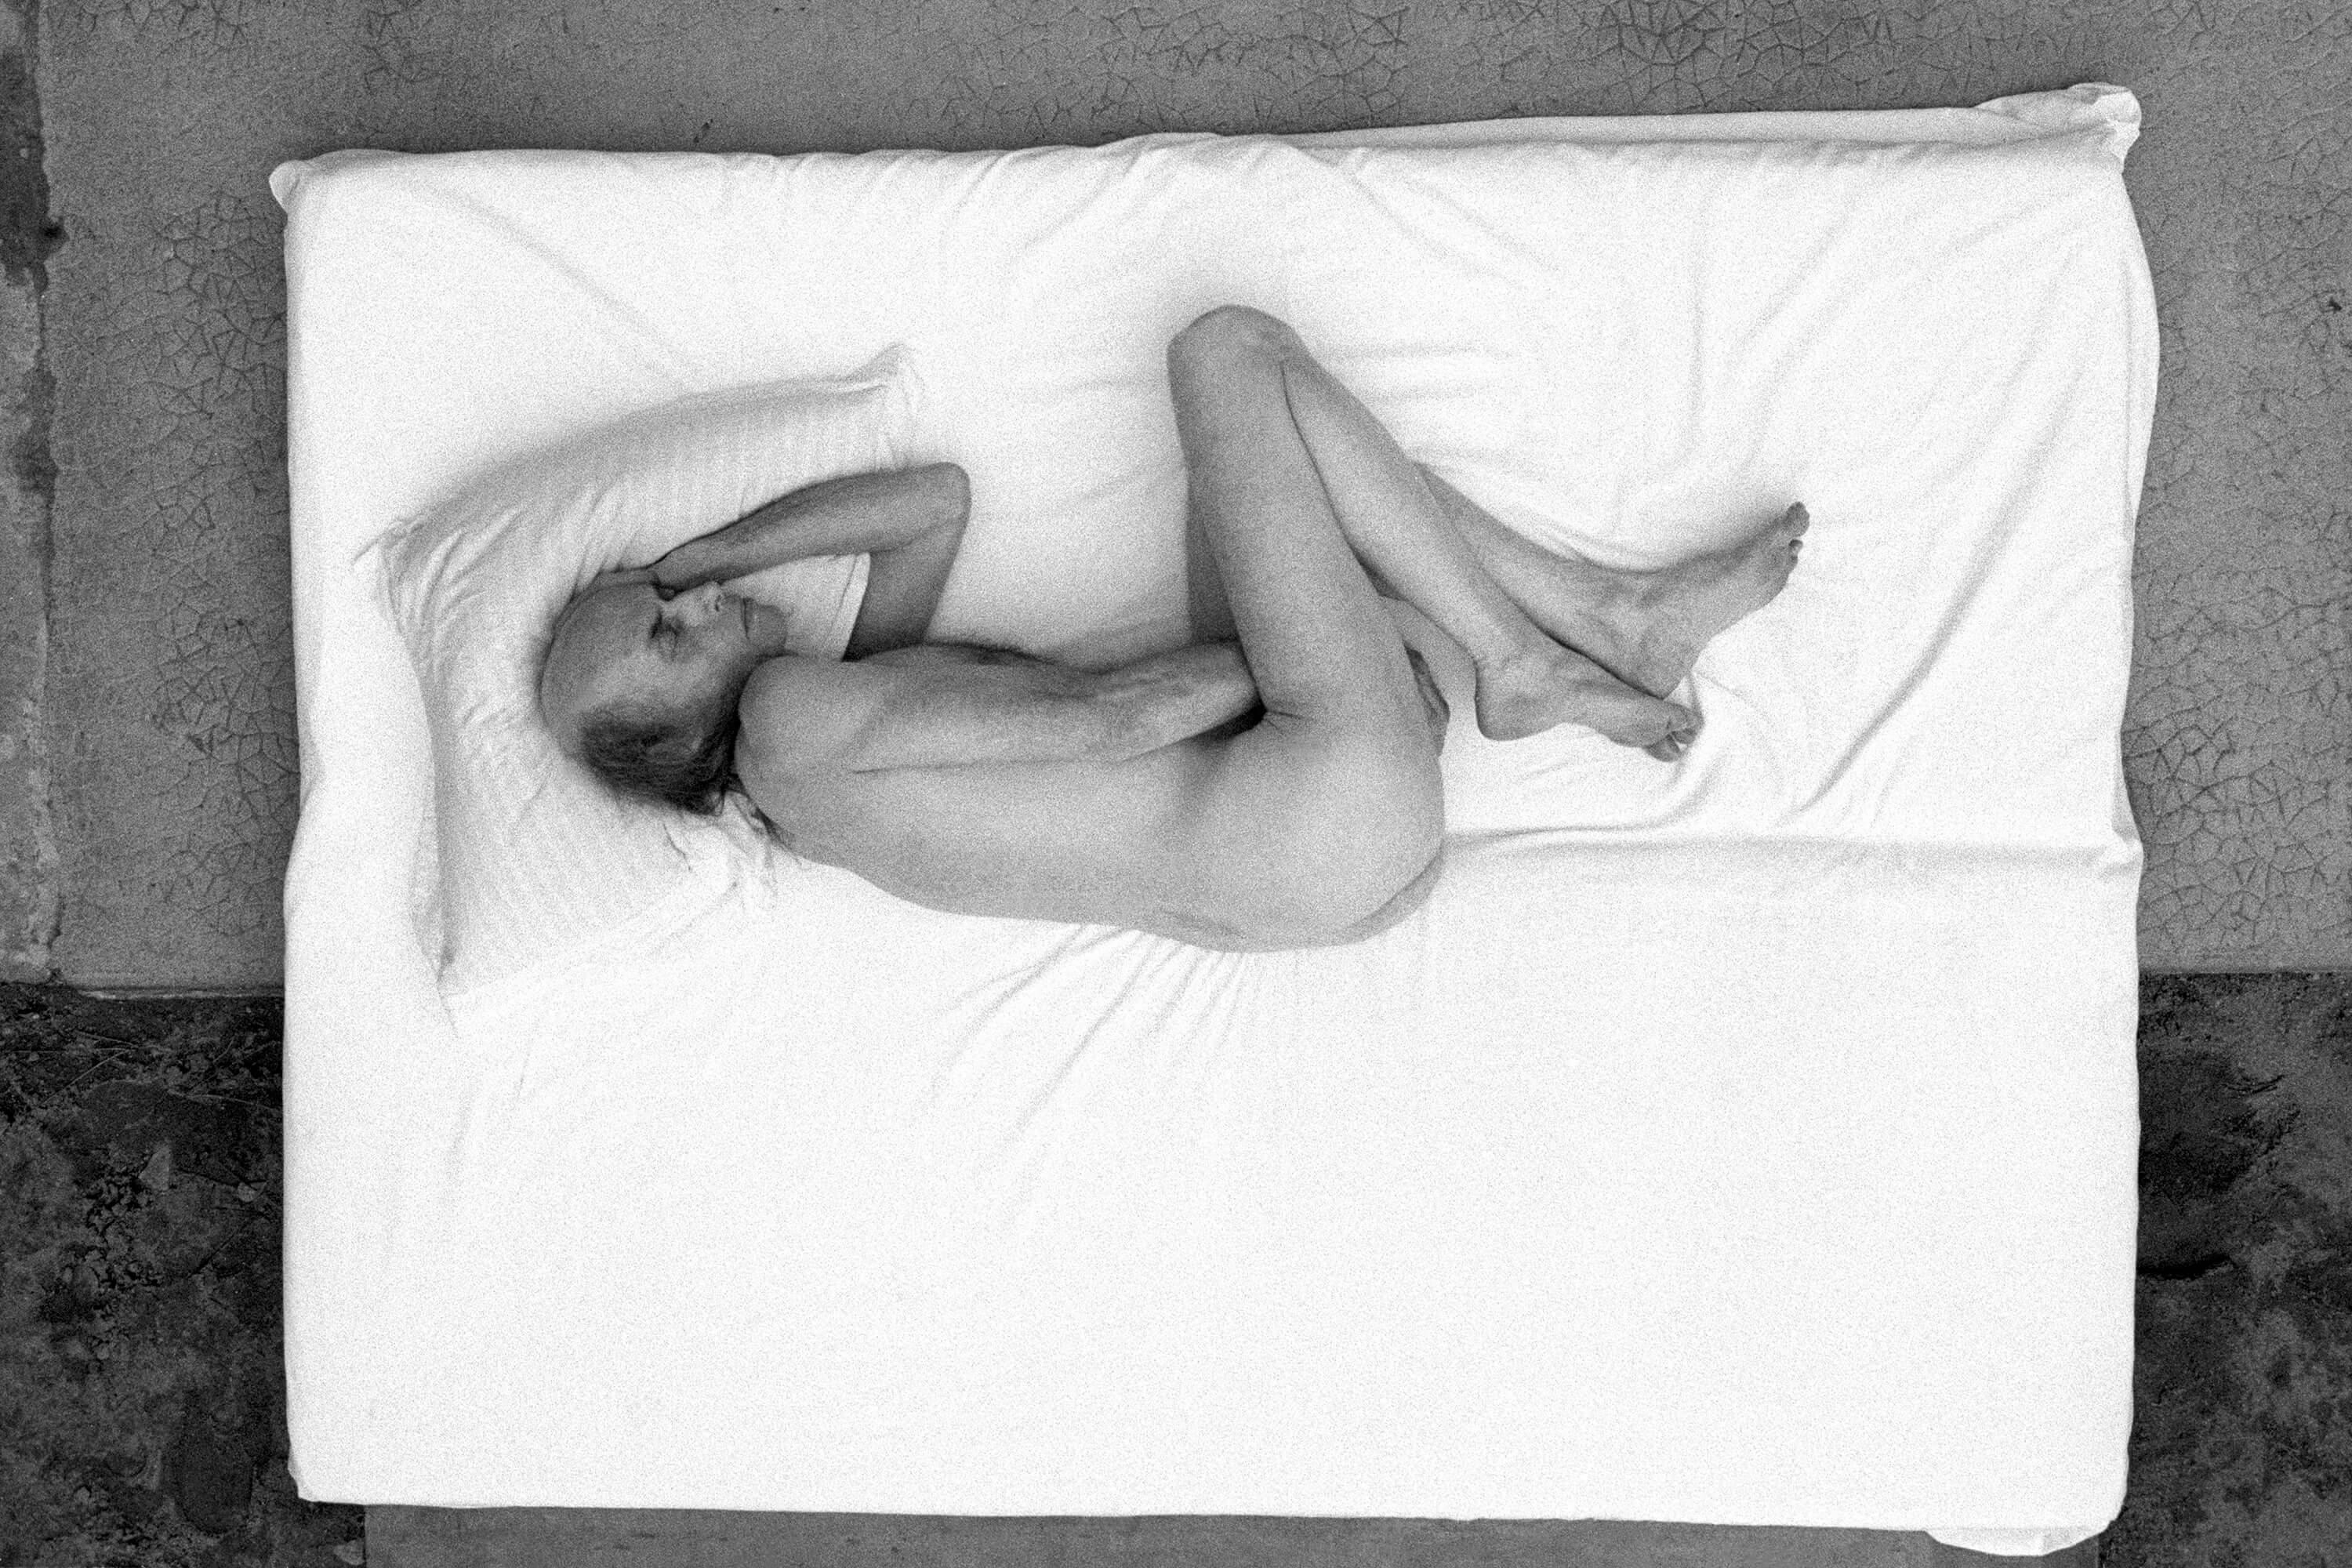 A naked man is lying on his side on a white mattress.